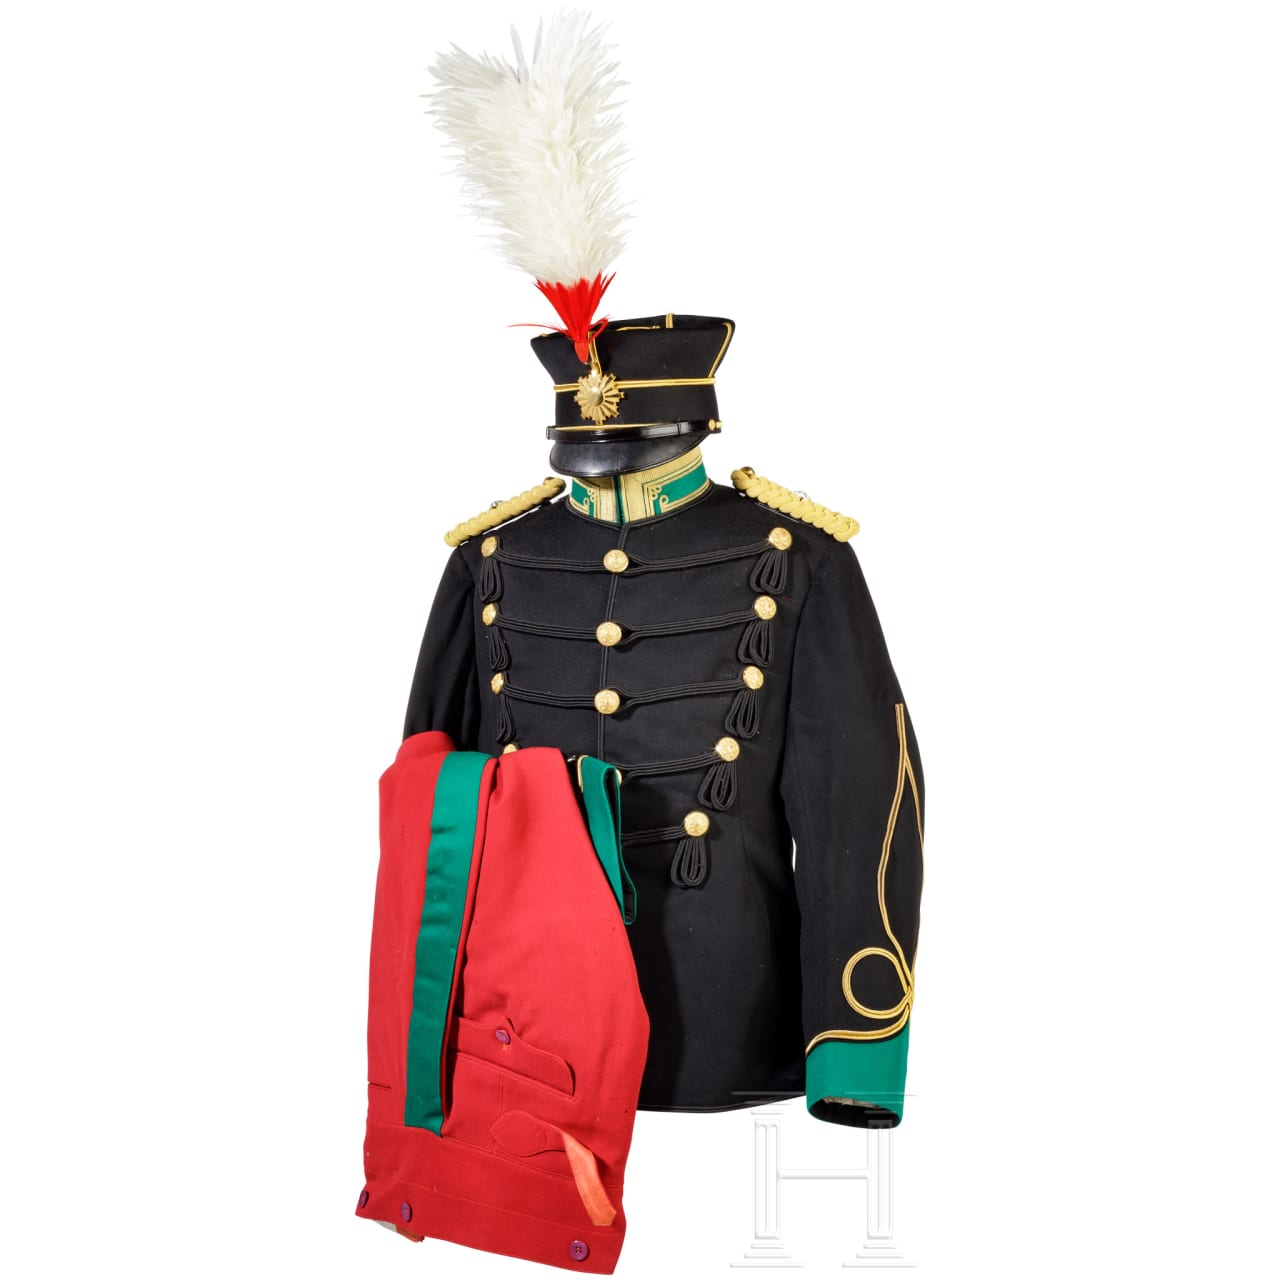 Uniform ensemble for a cavalry officer in World War II